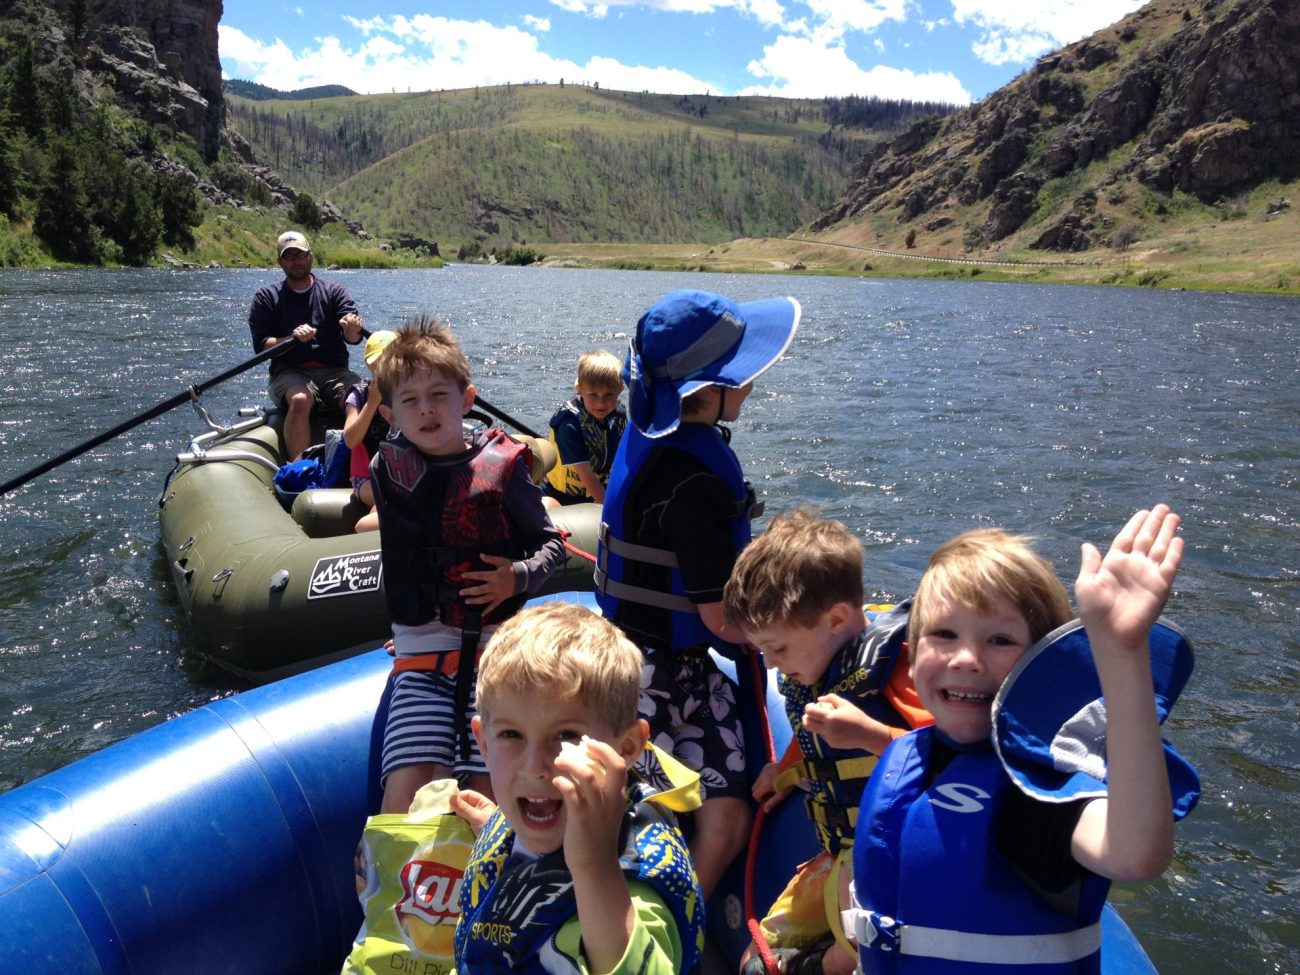 Family fun on the Madison River